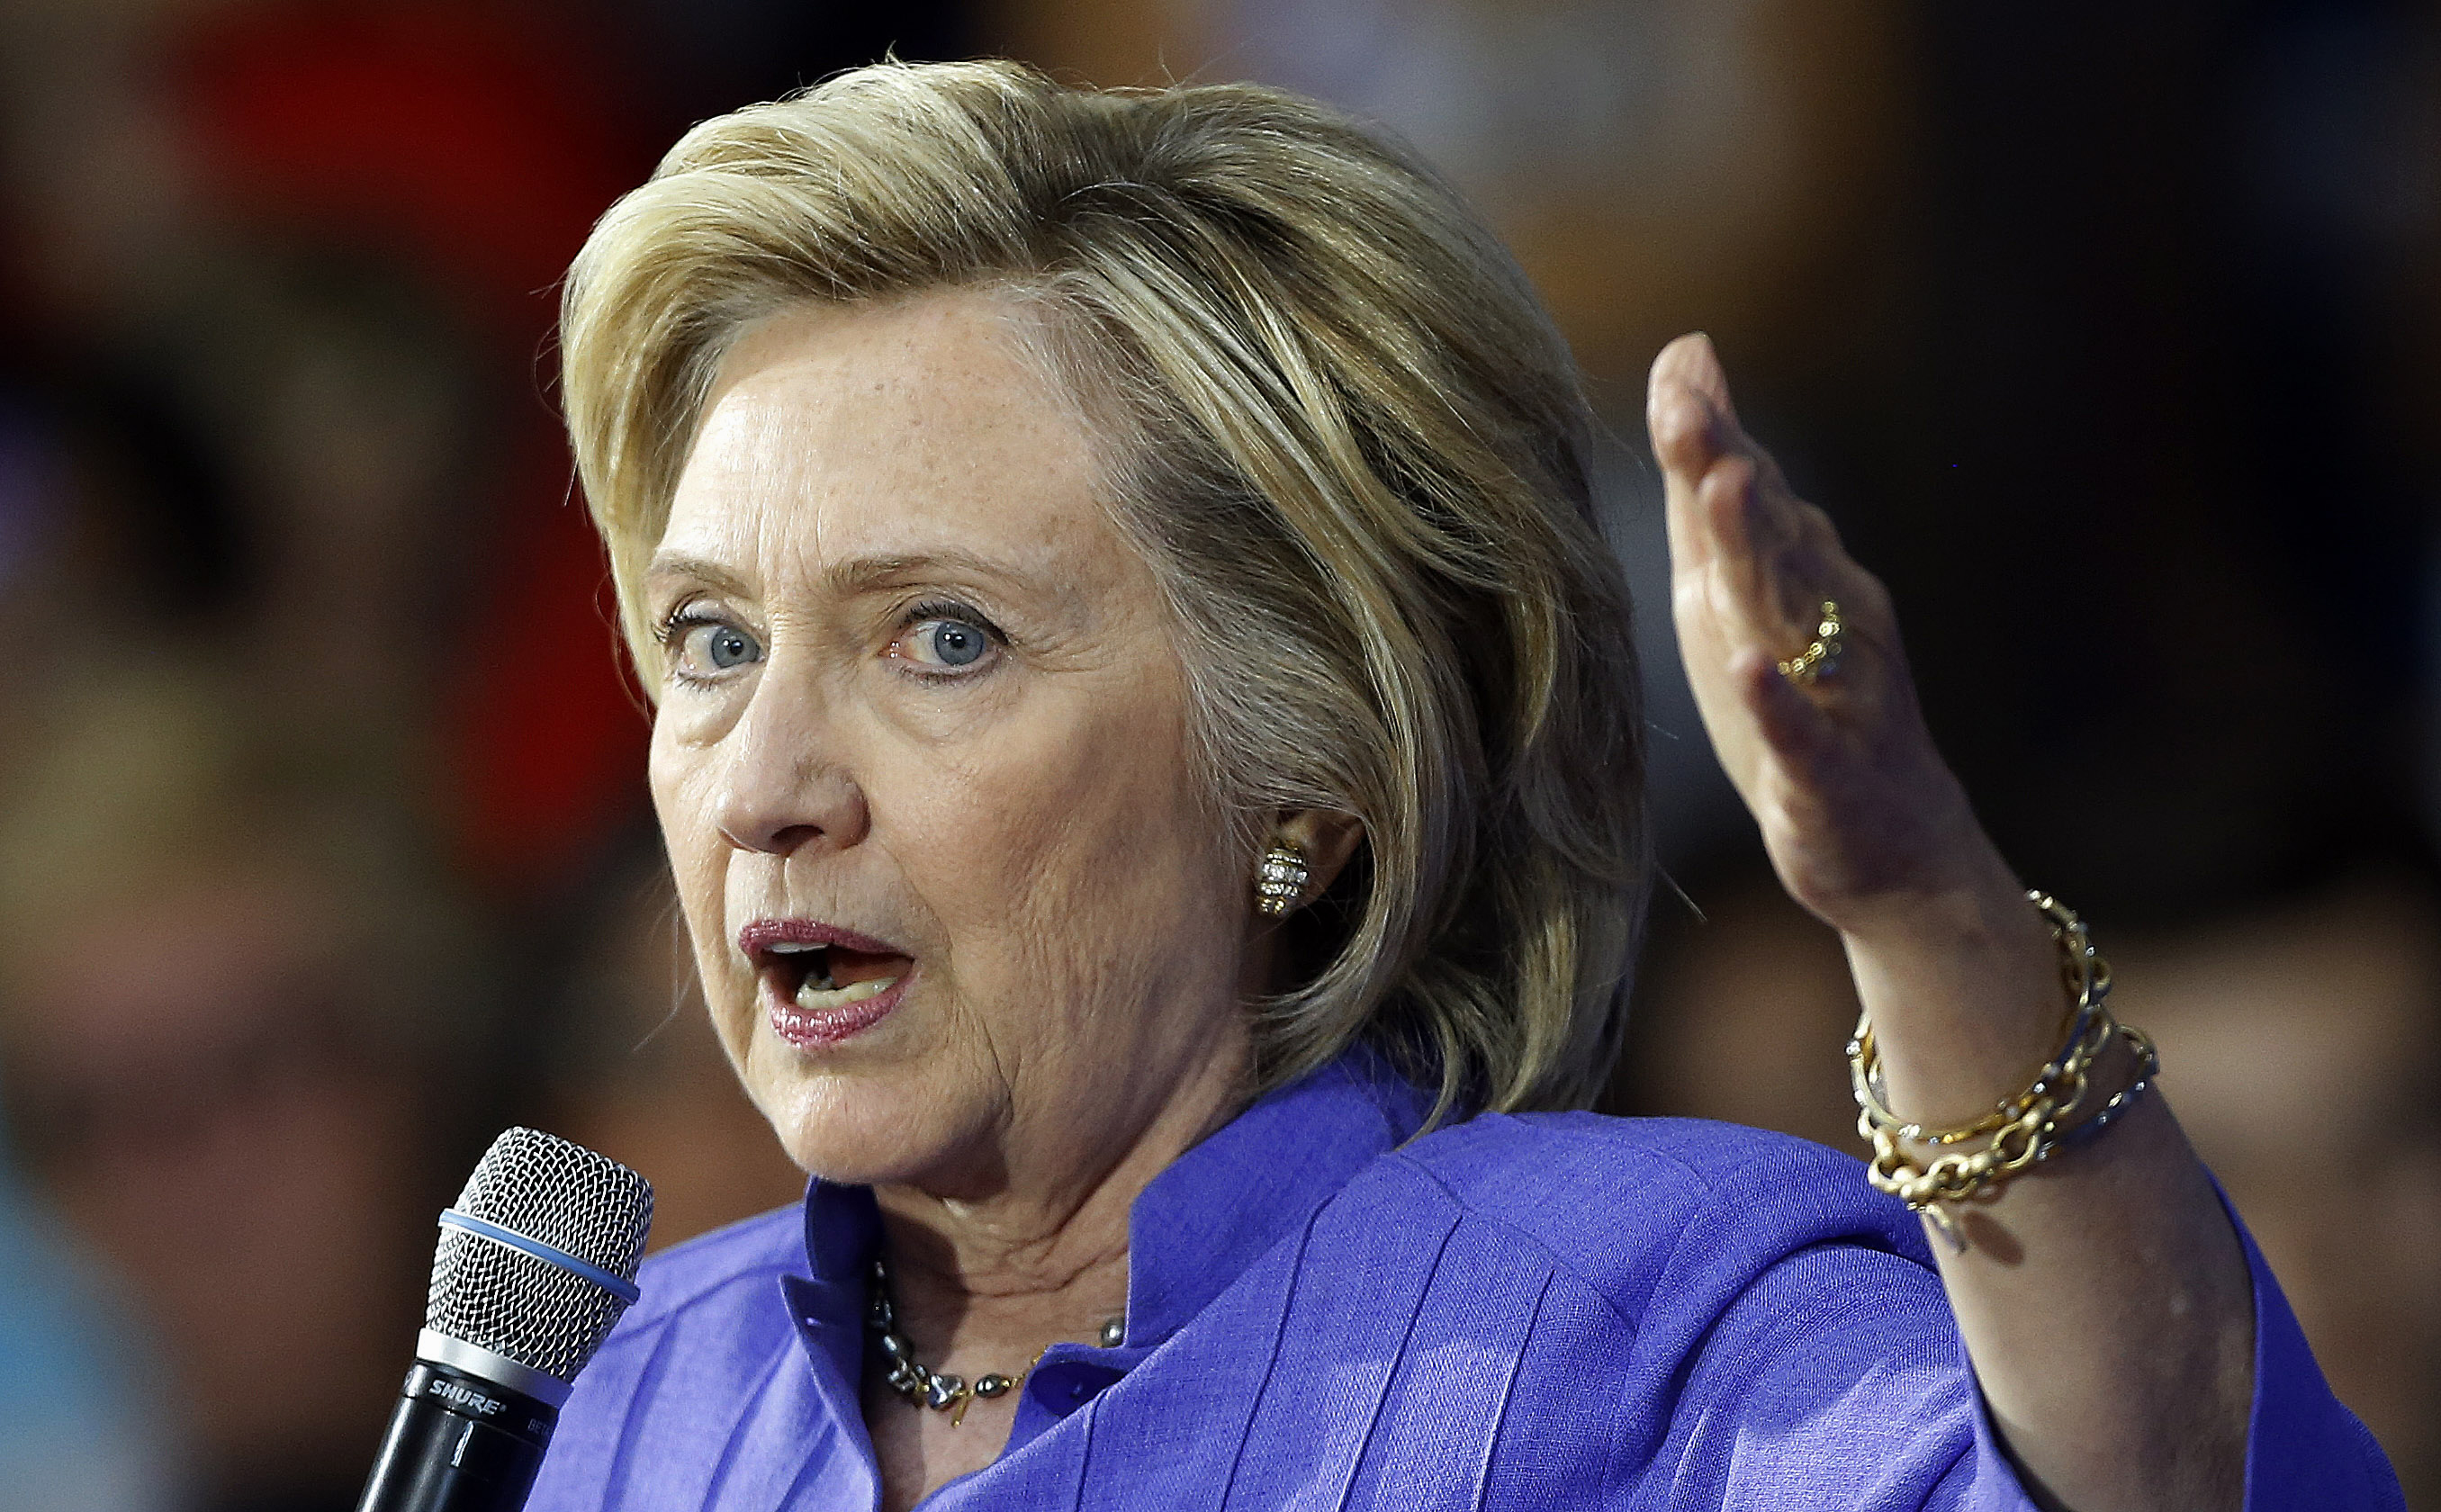 Facts About Hillary Clinton Time Hillary Clinton email case reopened by federal judge   Washington Times